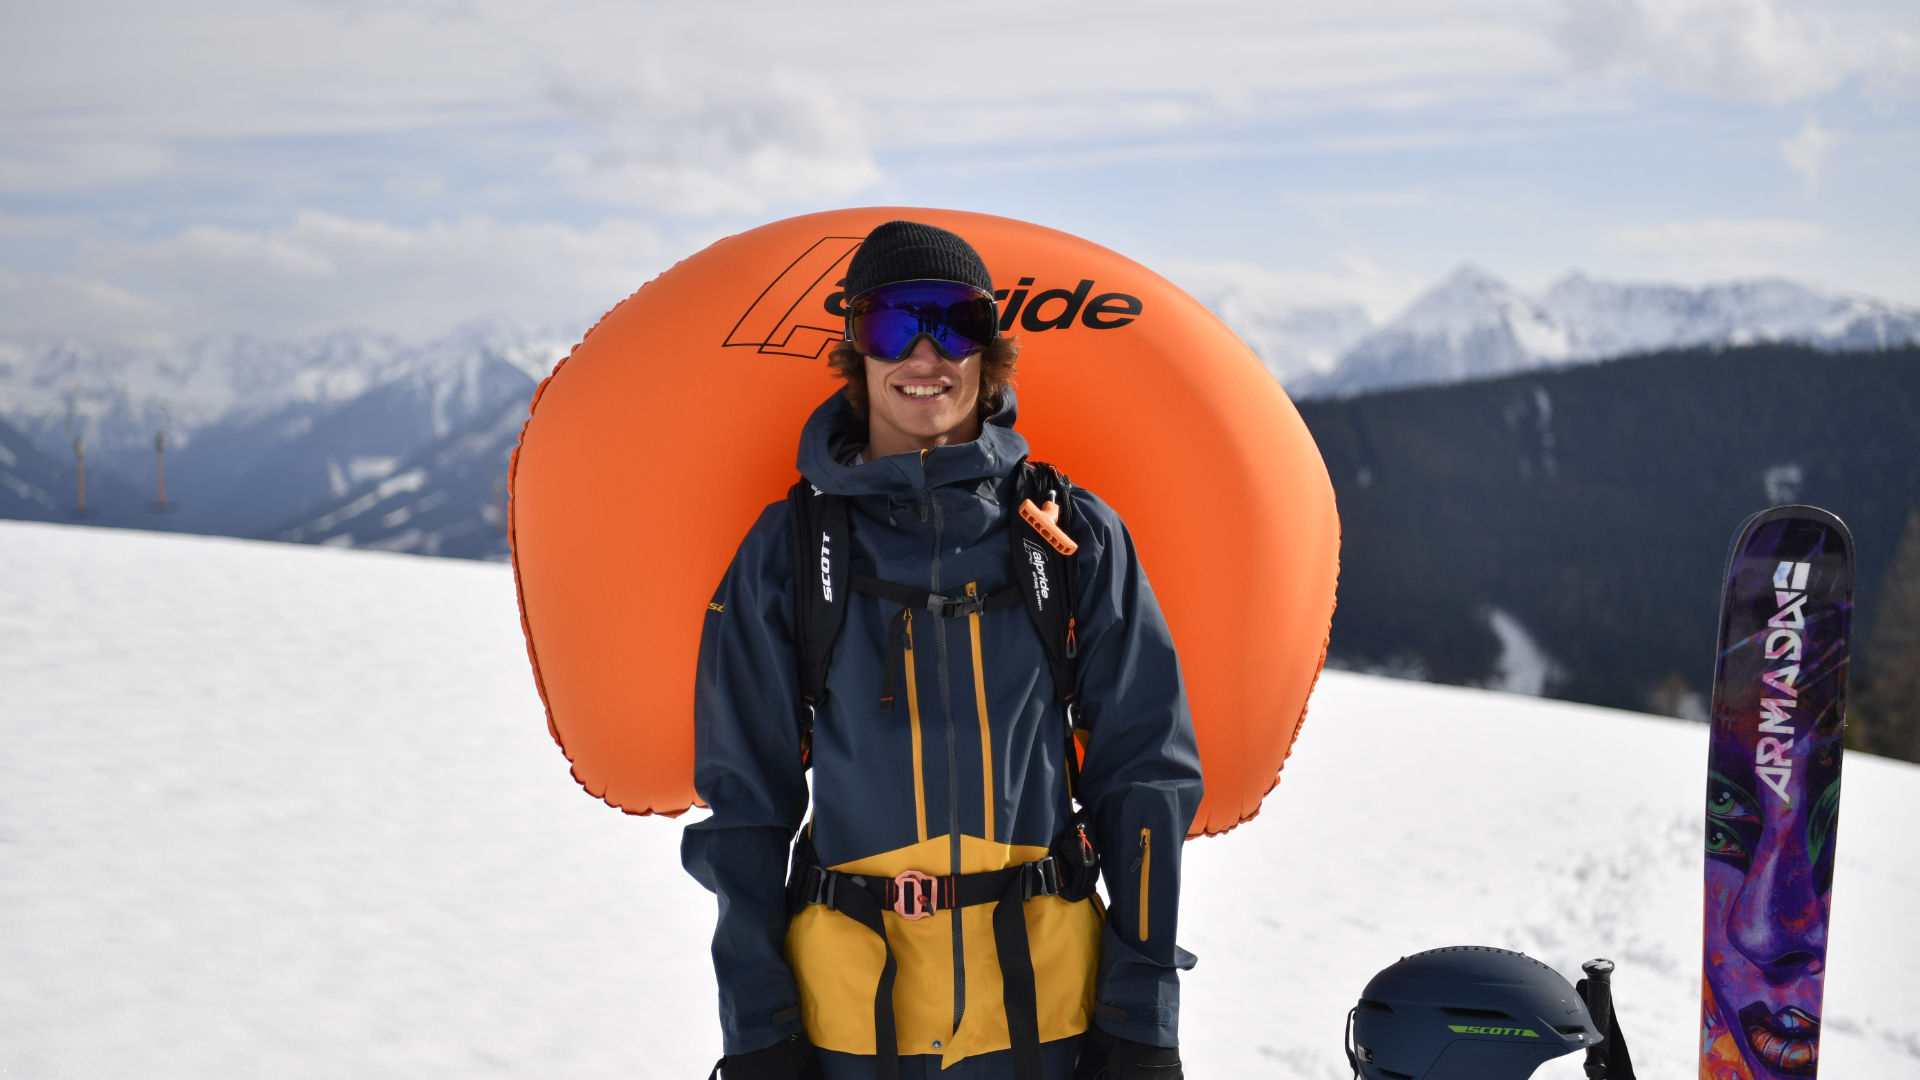 Freerider with an inflated Scott Alpride system standing outside next to his skis